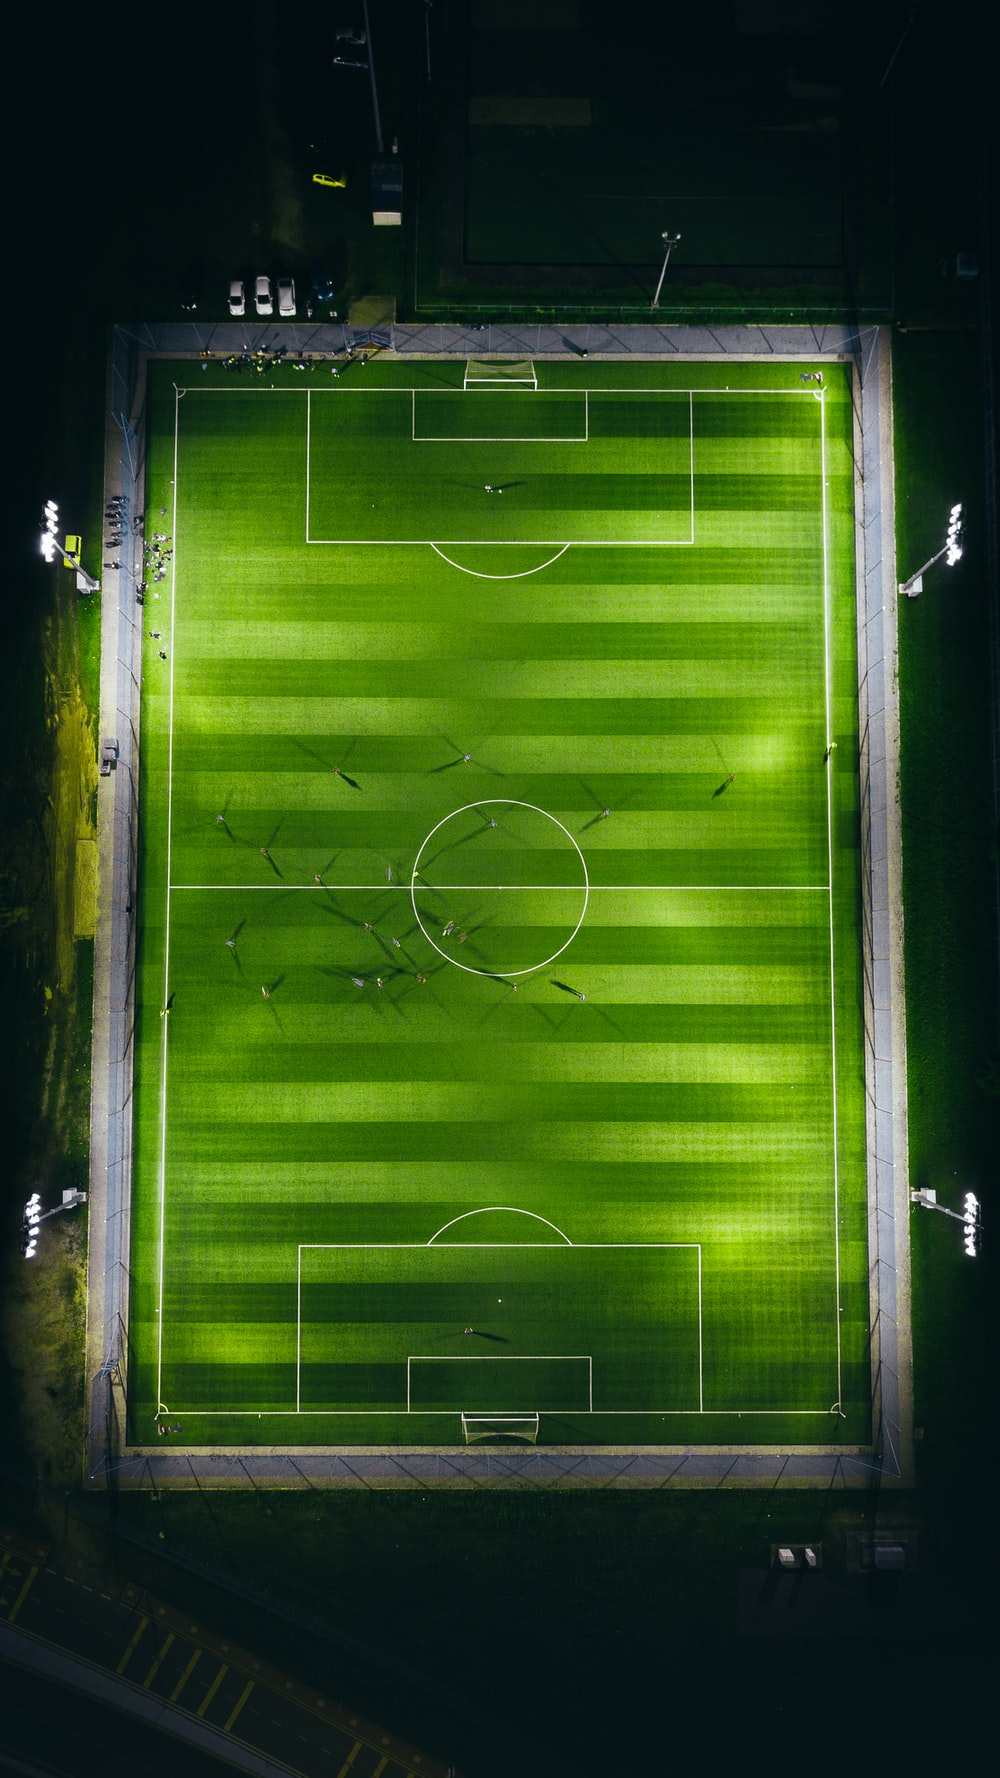 best 500 football pictures hd download free images on unsplash best 500 football pictures hd